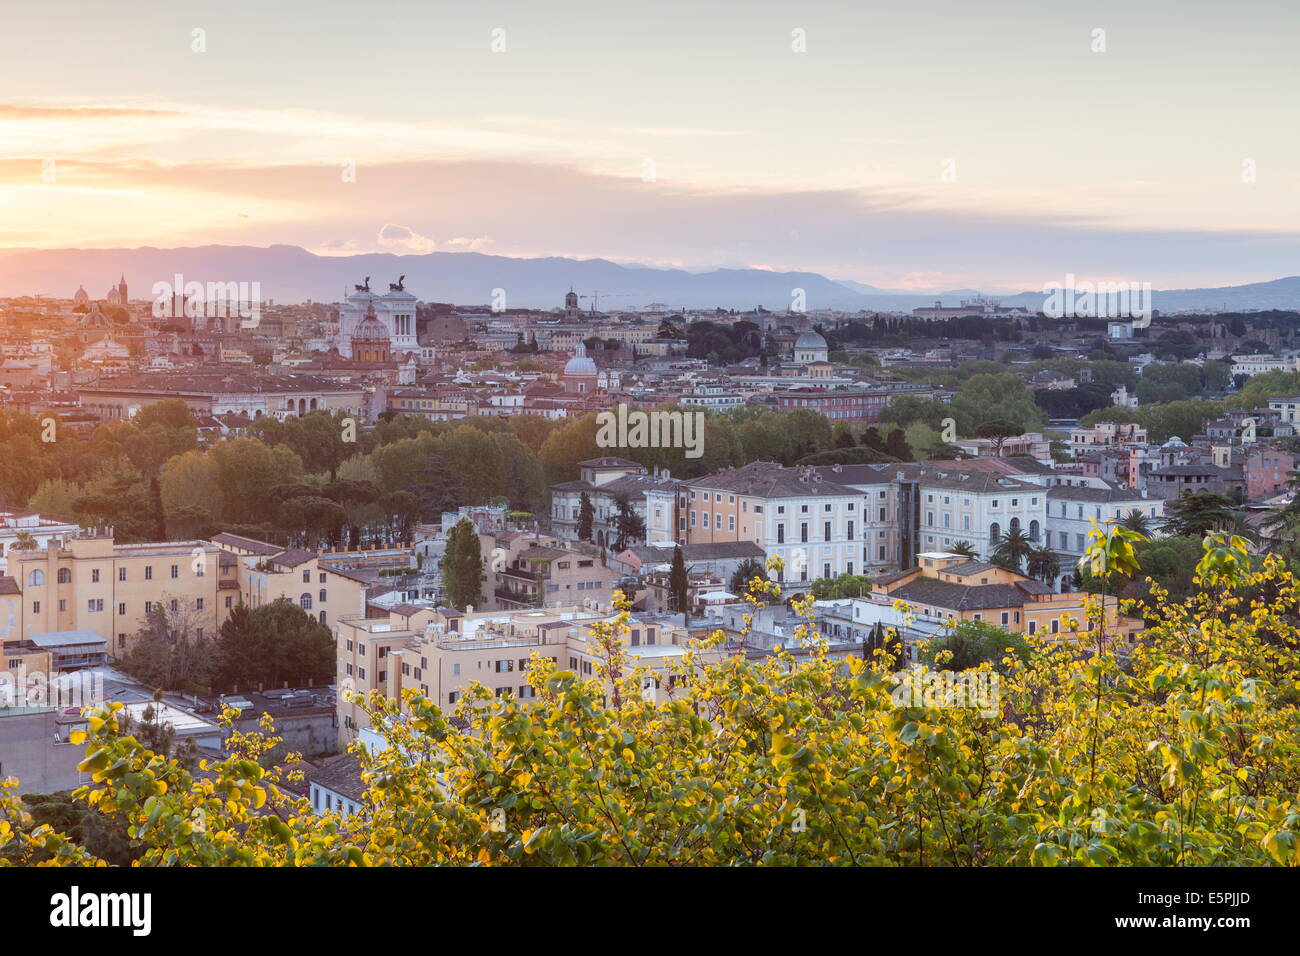 The view over the rooftops of Rome from Gianicolo. - Stock Image